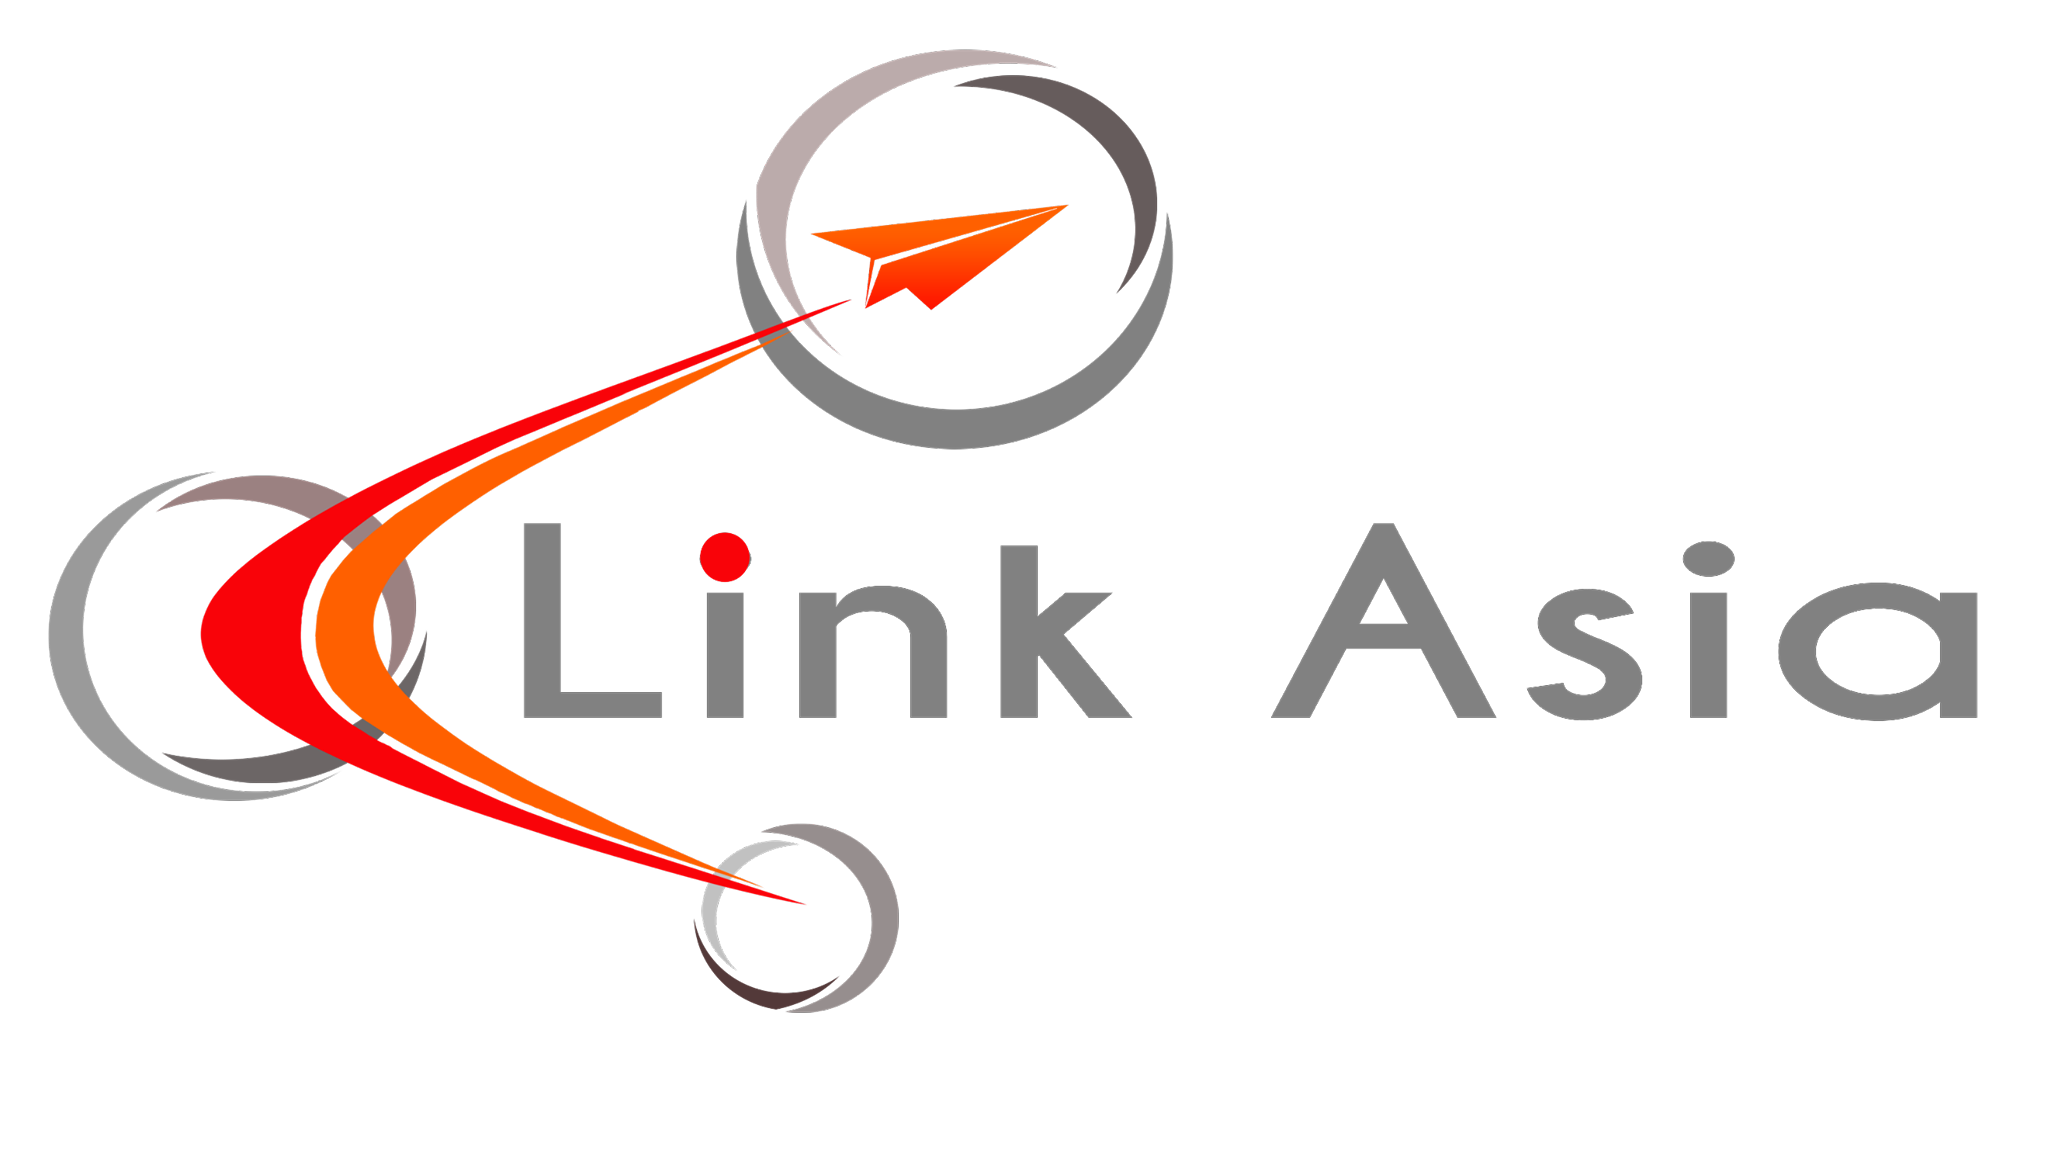 Link Asia Manpower Solutions OFW Database